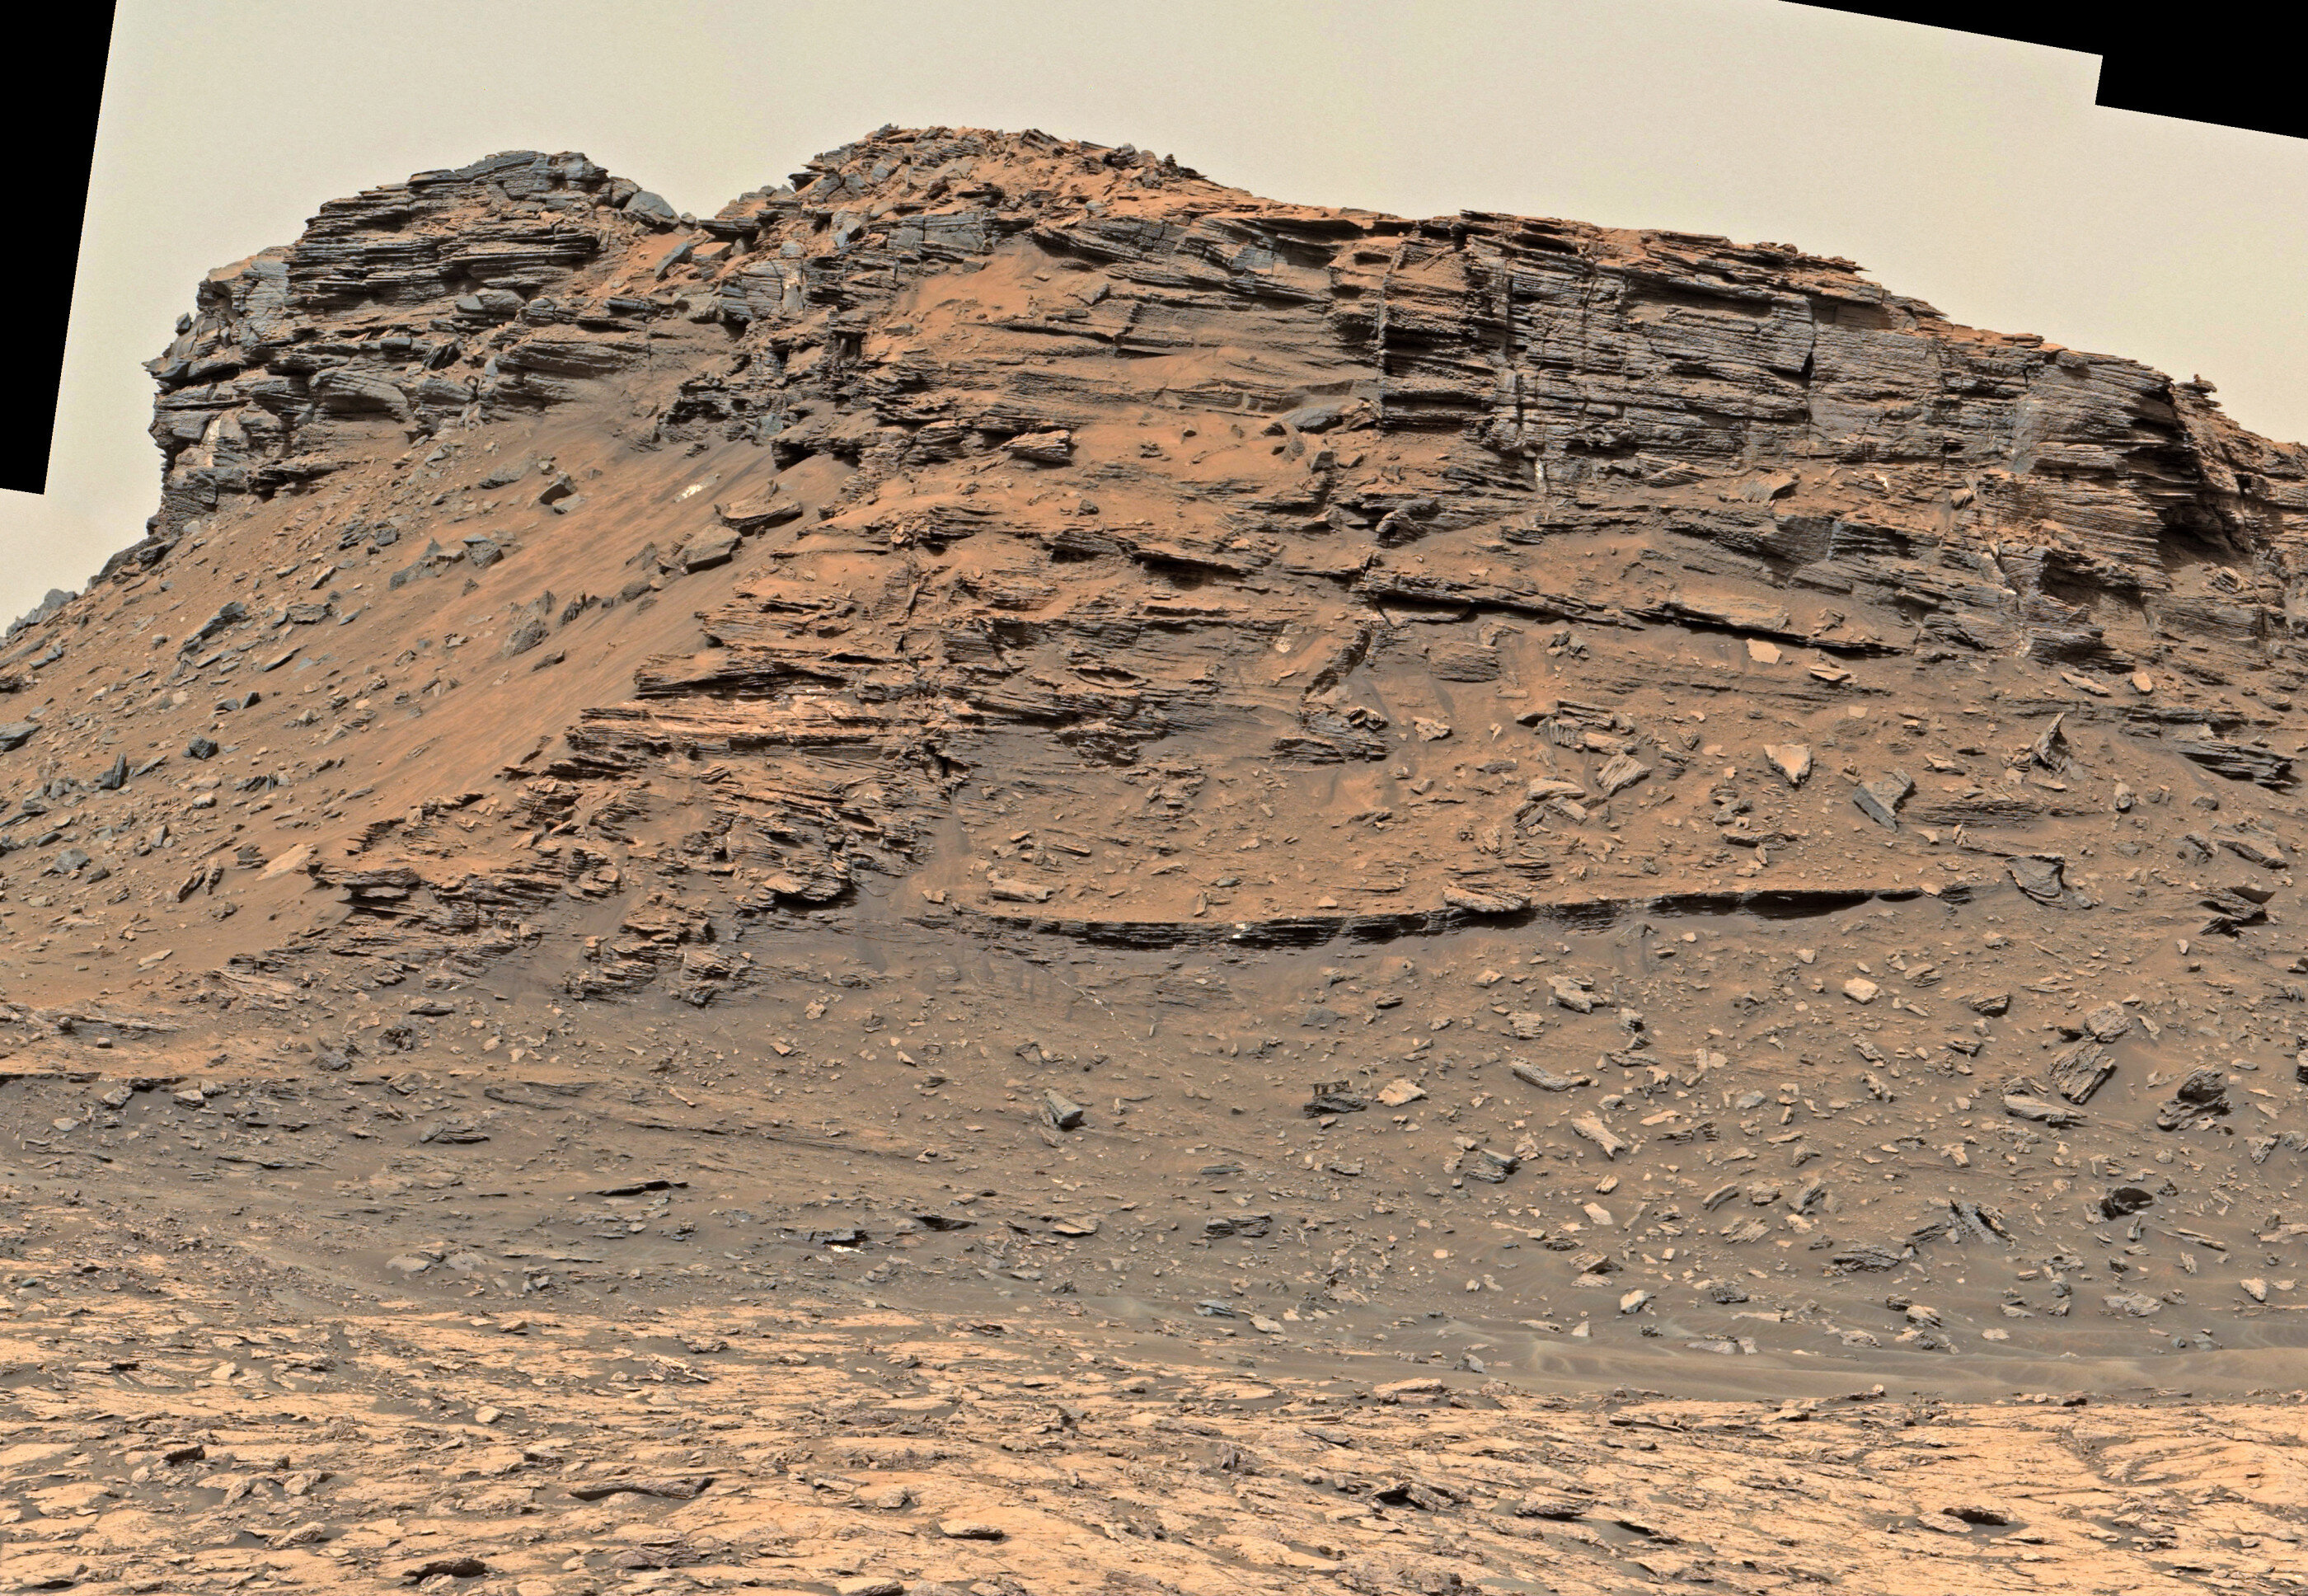 Mars' changing habitability recorded by ancient dune fields in Gale crater